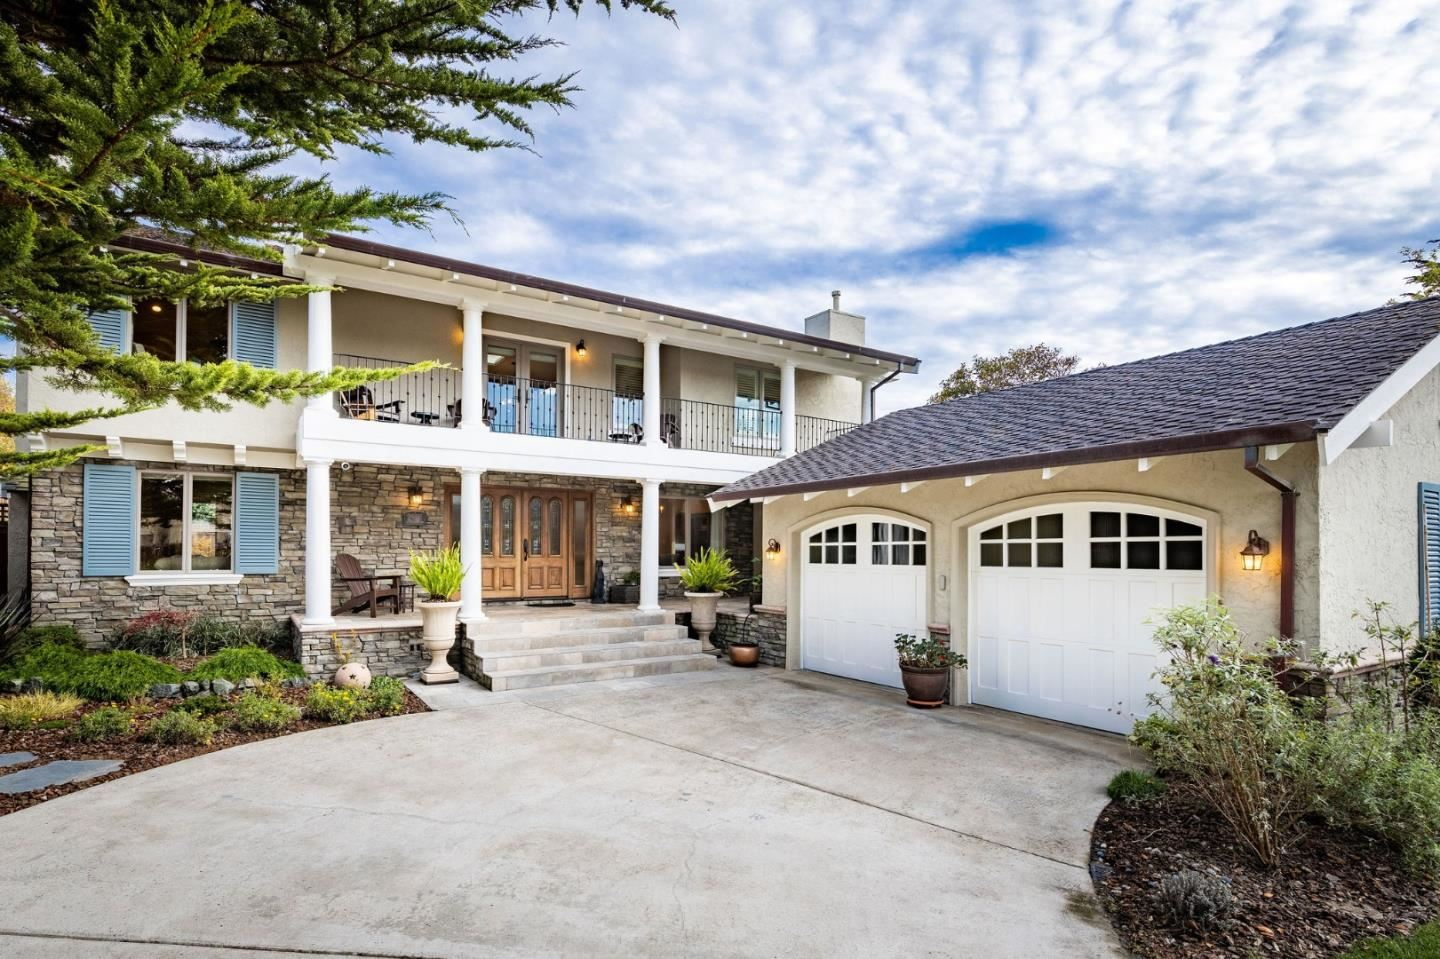 Photo for 2107 Winged Foot RD, HALF MOON BAY, CA 94019 (MLS # ML81820312)